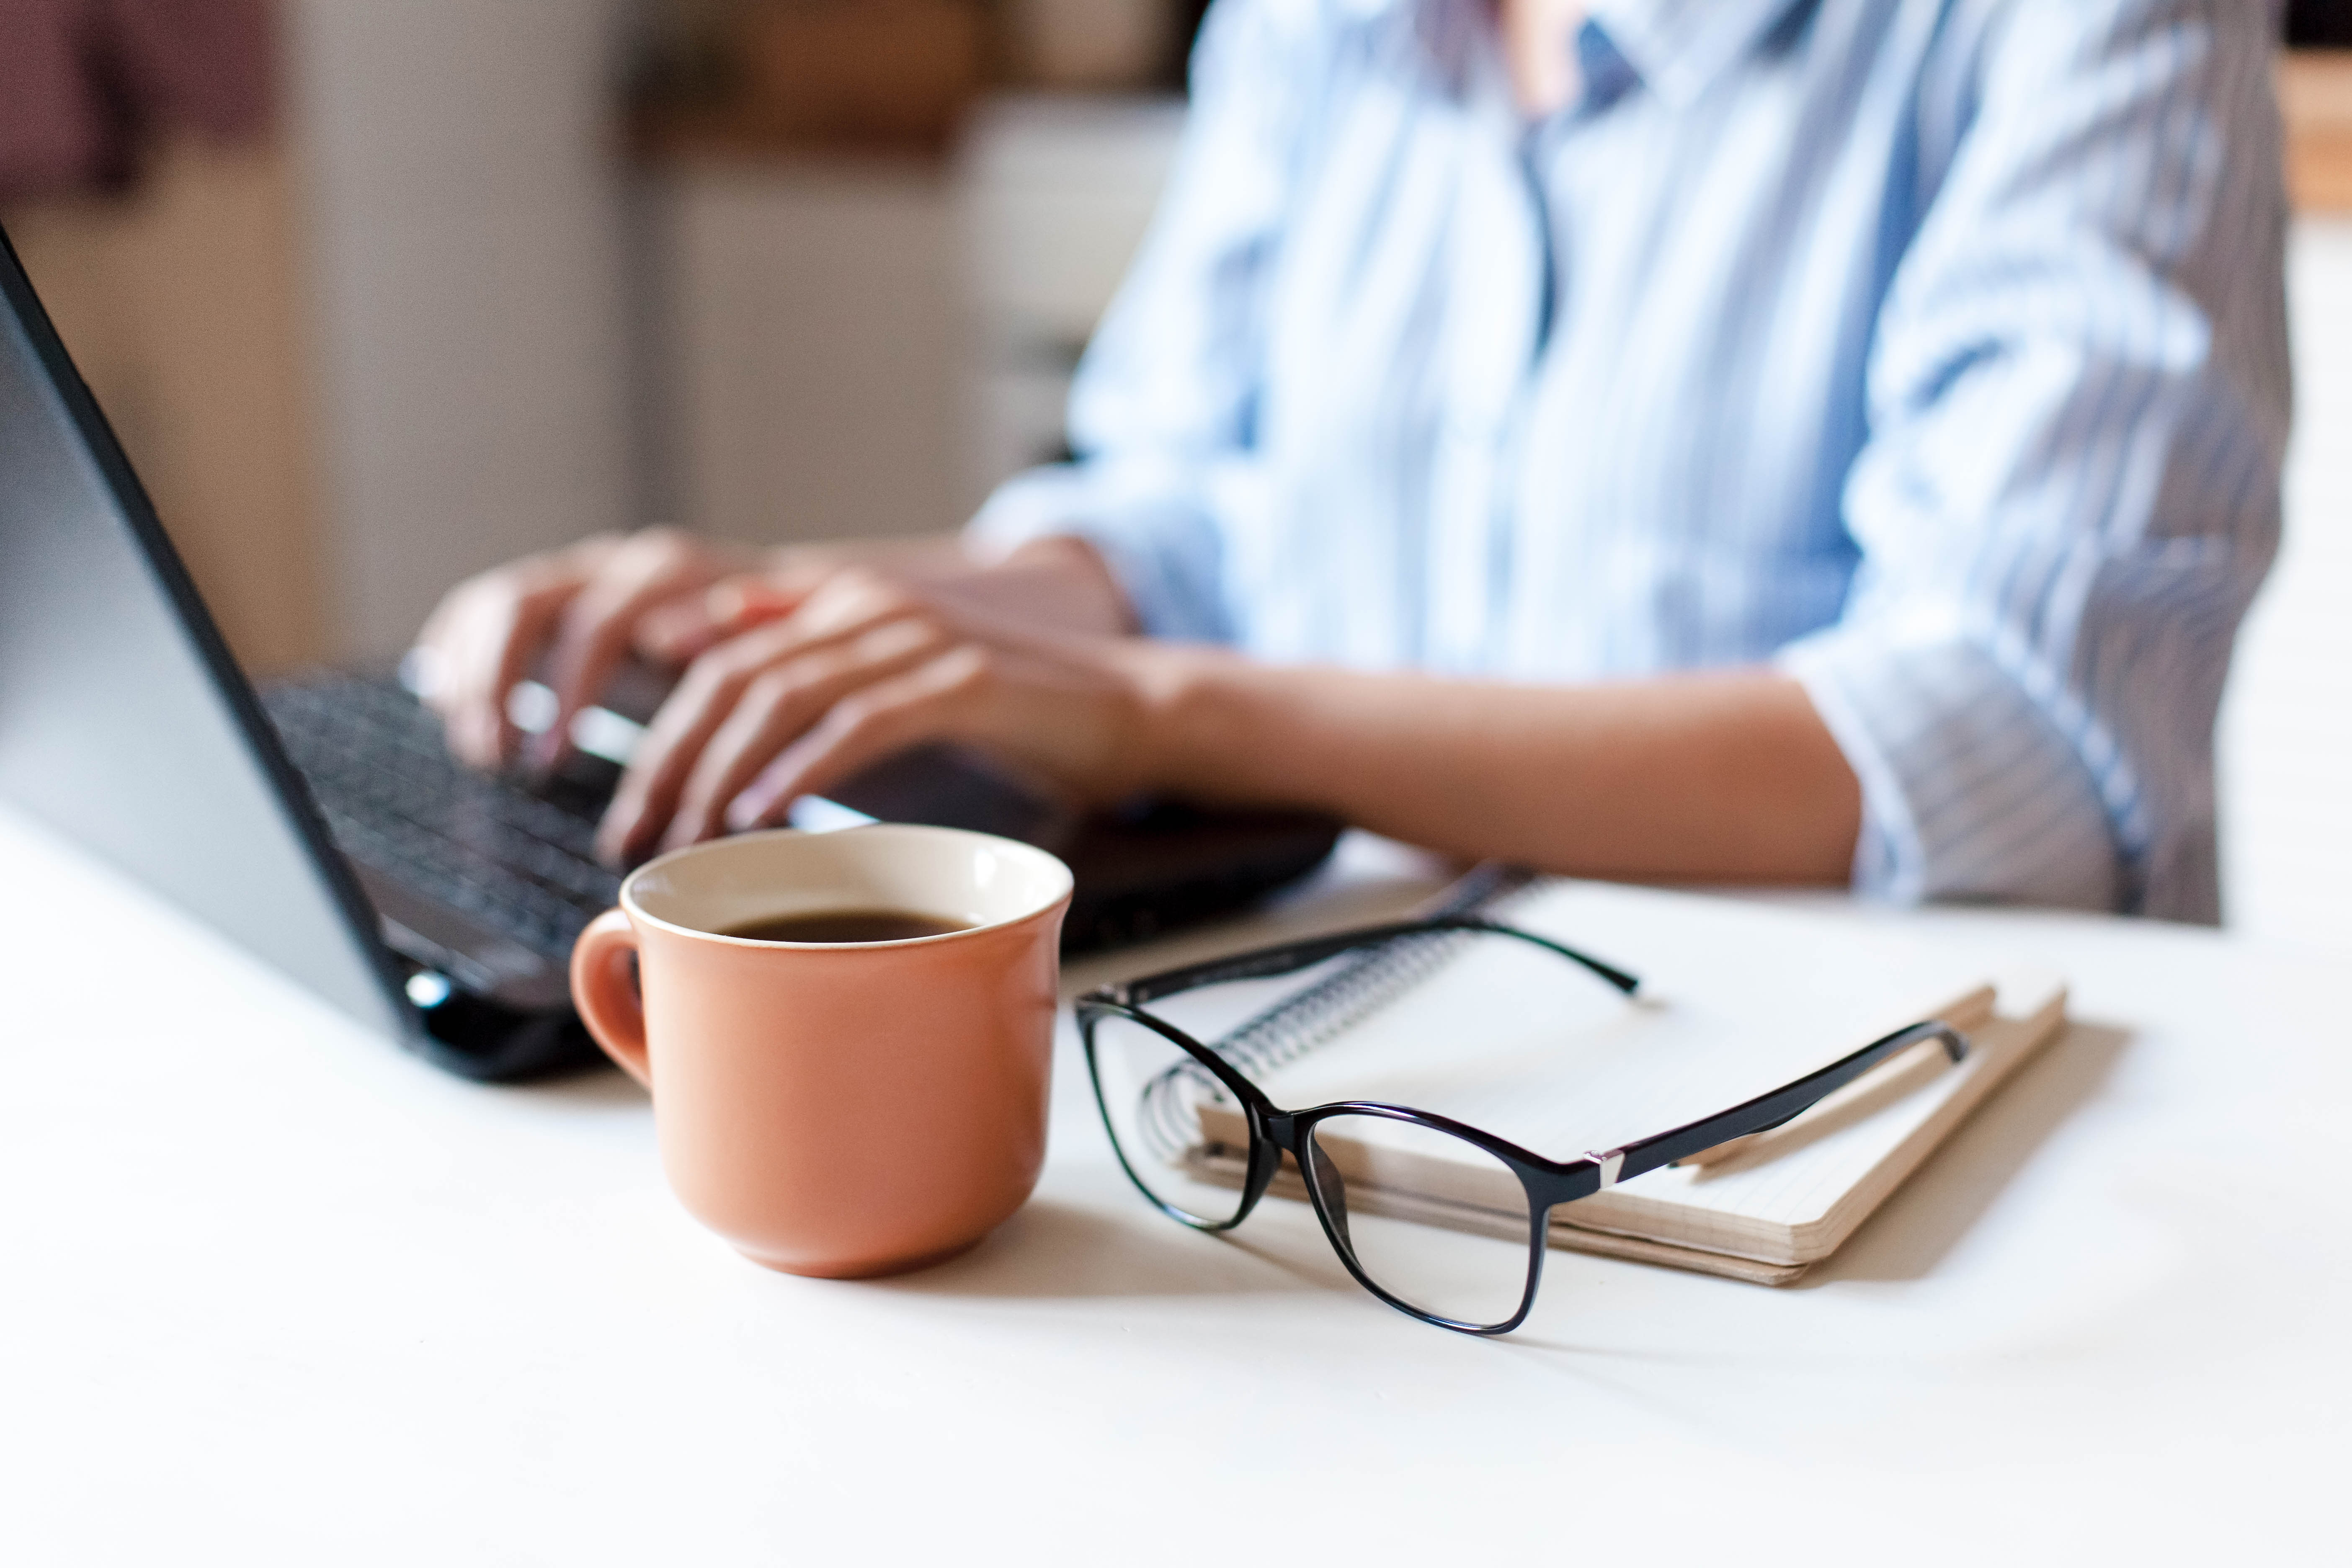 Remote working from home. Freelancer workplace in kitchen with laptop, cup of coffee, spectacles. Concept of distance learning, isolation, female business, shopping online. Close up of woman hands.